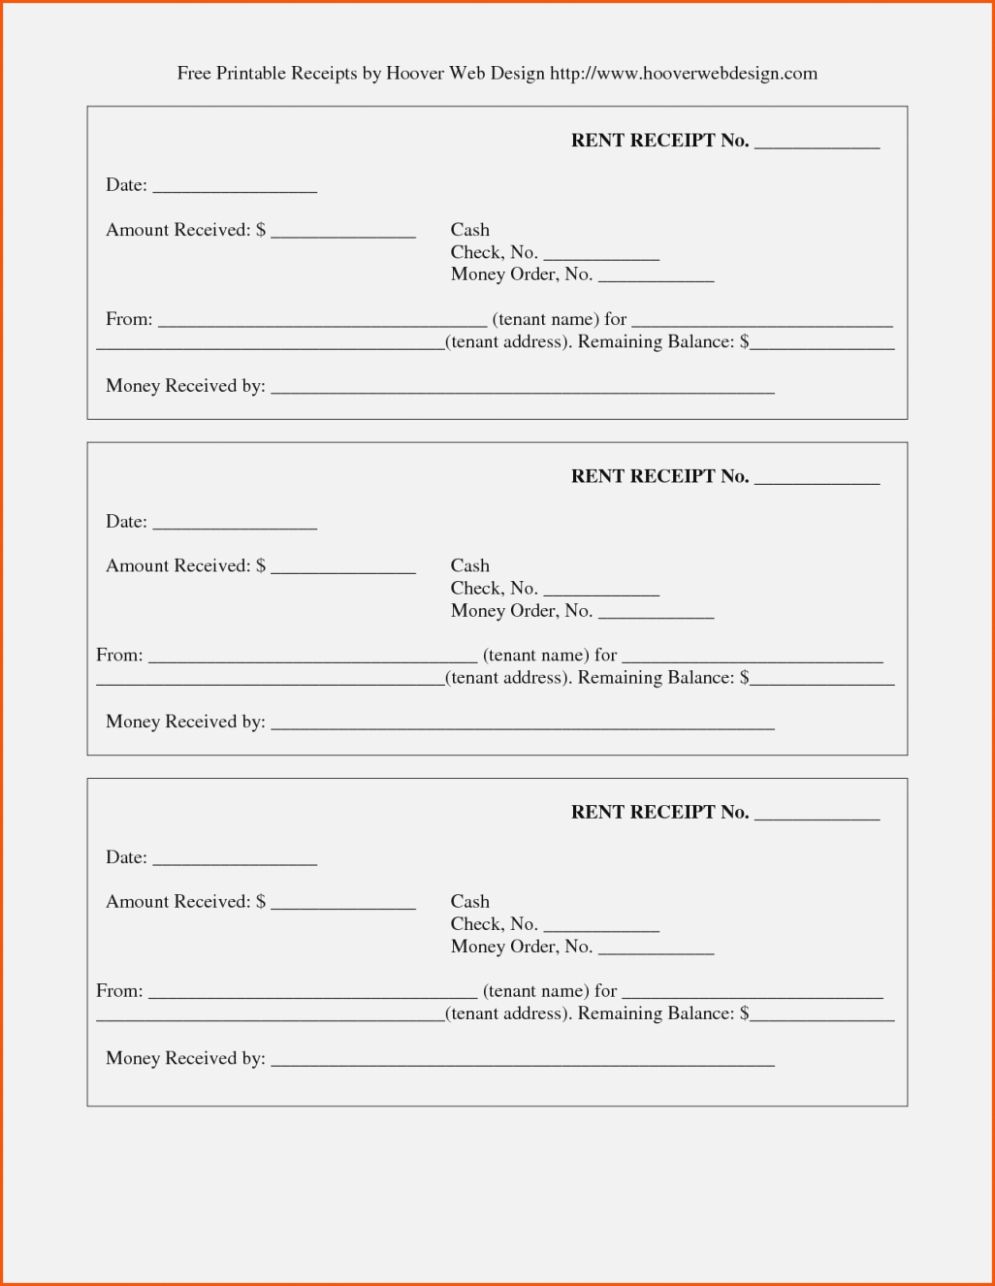 Understanding The   Realty Executives Mi : Invoice And Resume - Www Hooverwebdesign Com Free Printables Printable Receipts